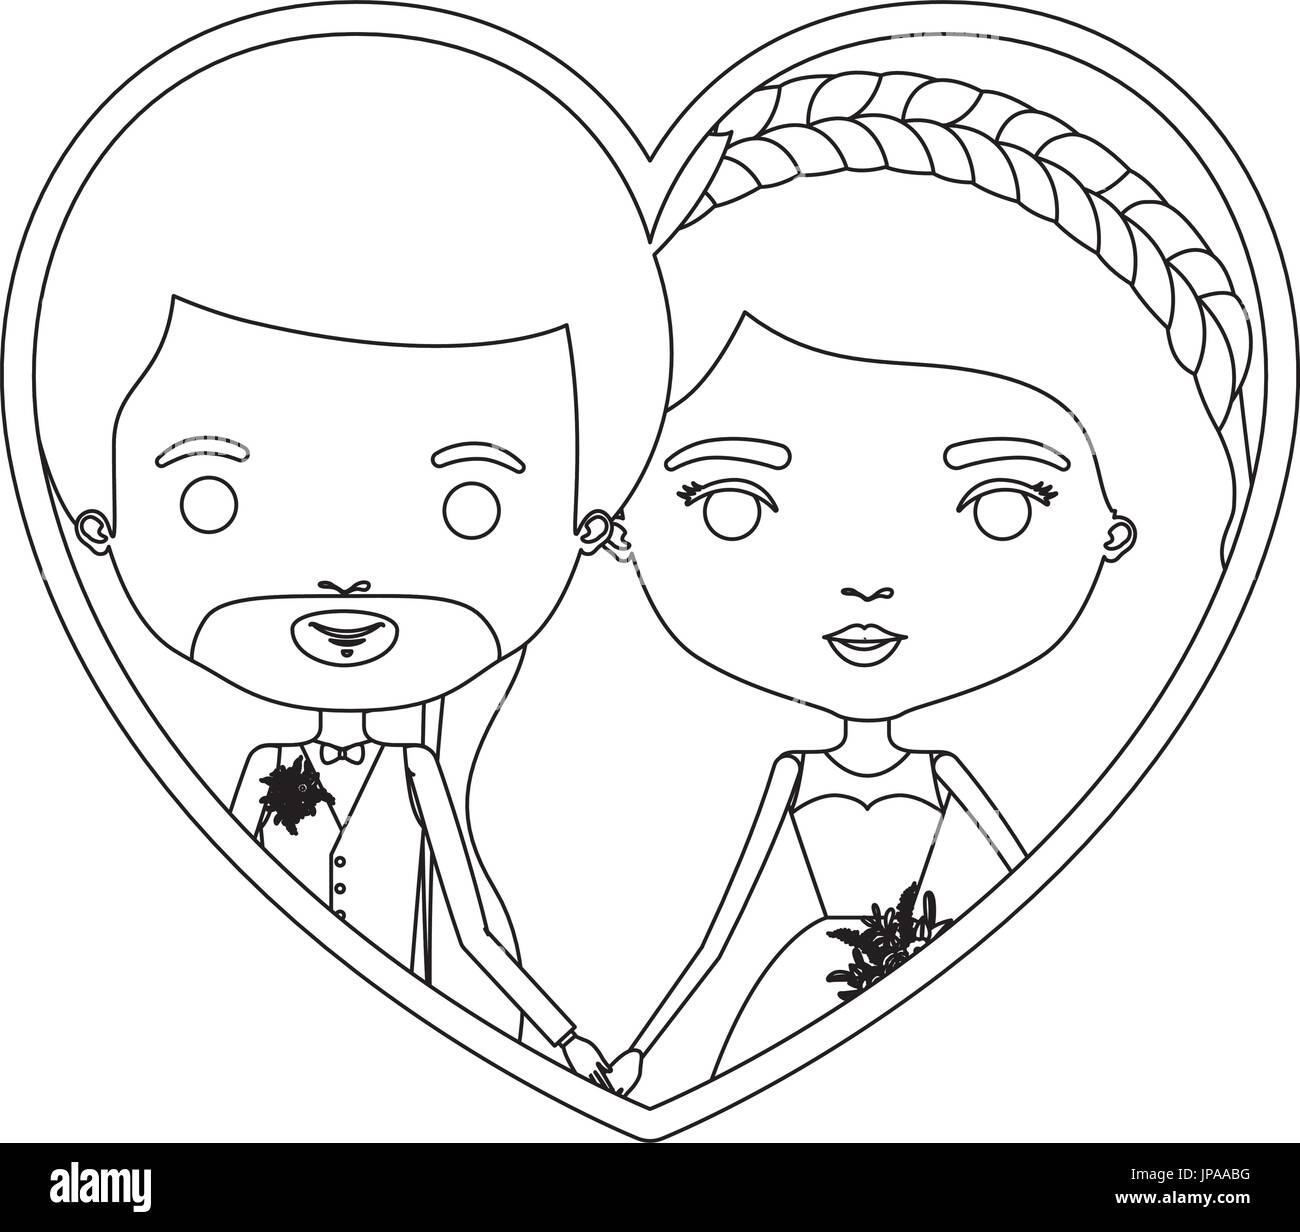 monochrome silhouette heart shape portrait caricature of newly married couple groom with formal wear and bride with wavy long hairstyle - Stock Image